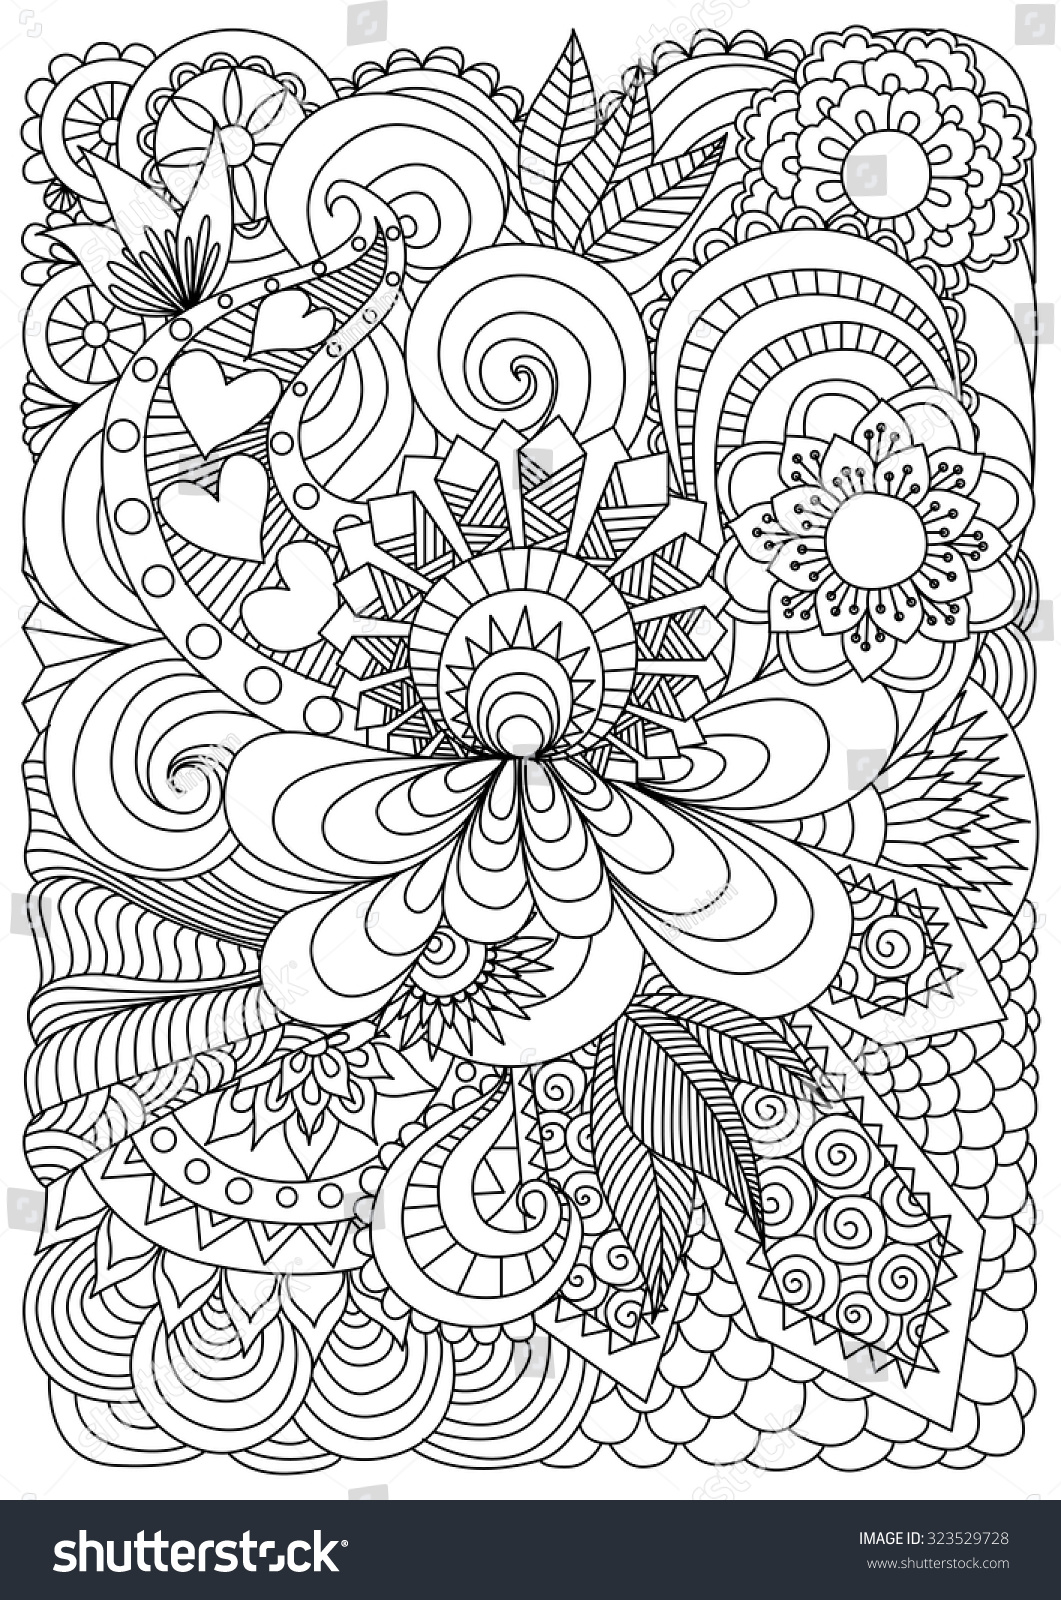 design originals coloring pages - photo #3